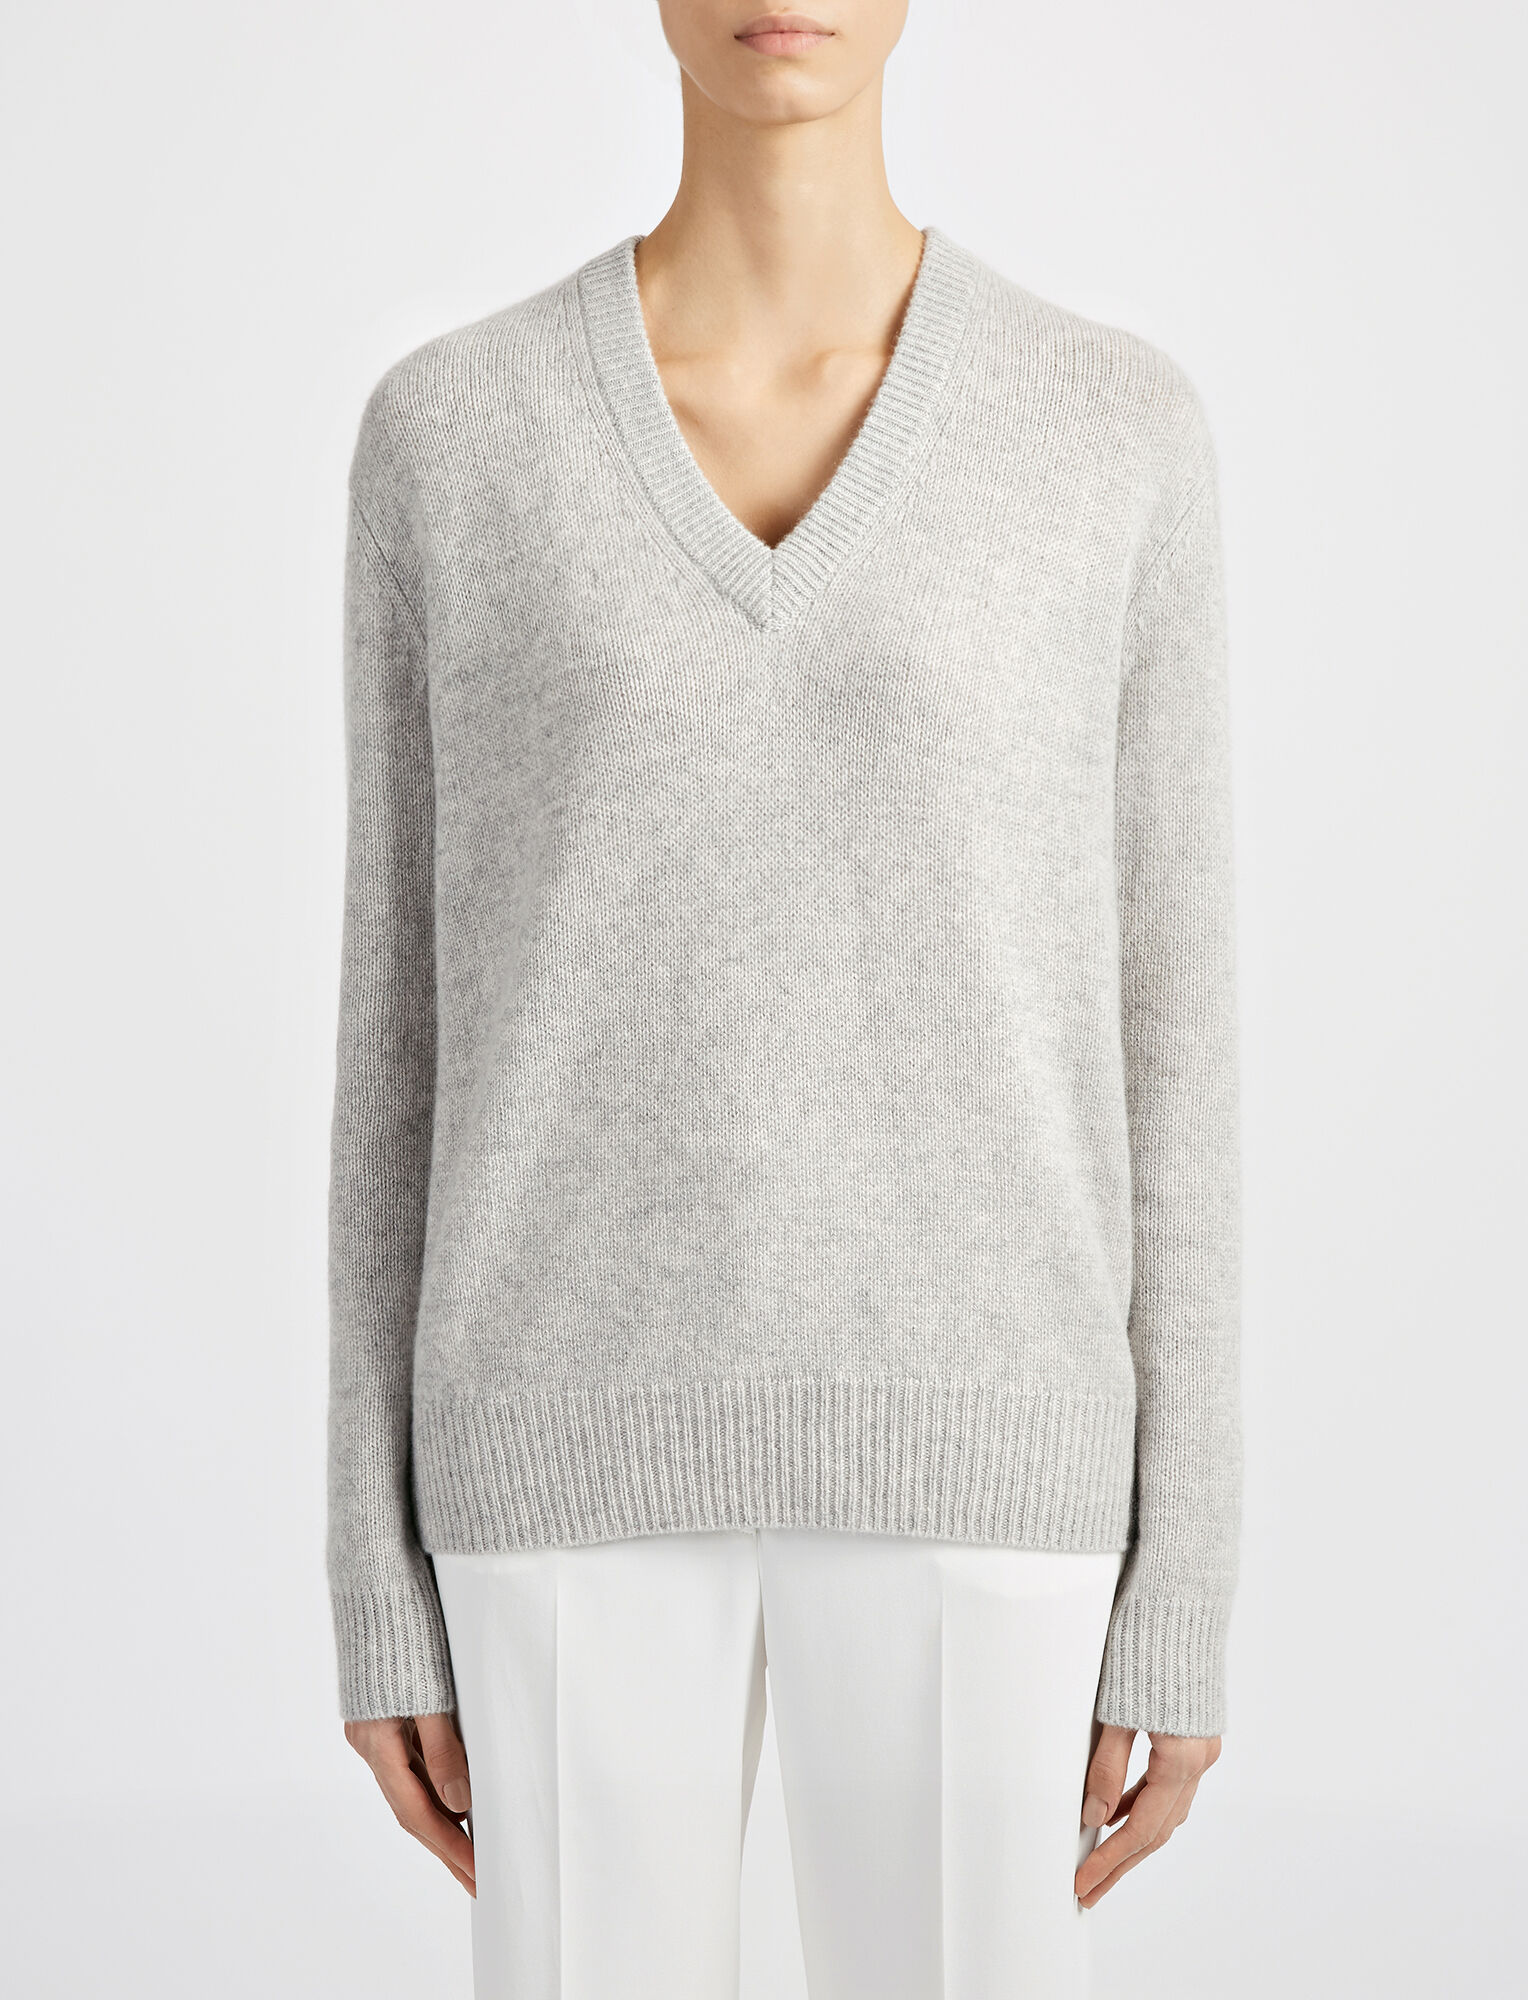 Joseph, Open Cashmere V Neck Top, in GREY CHINE